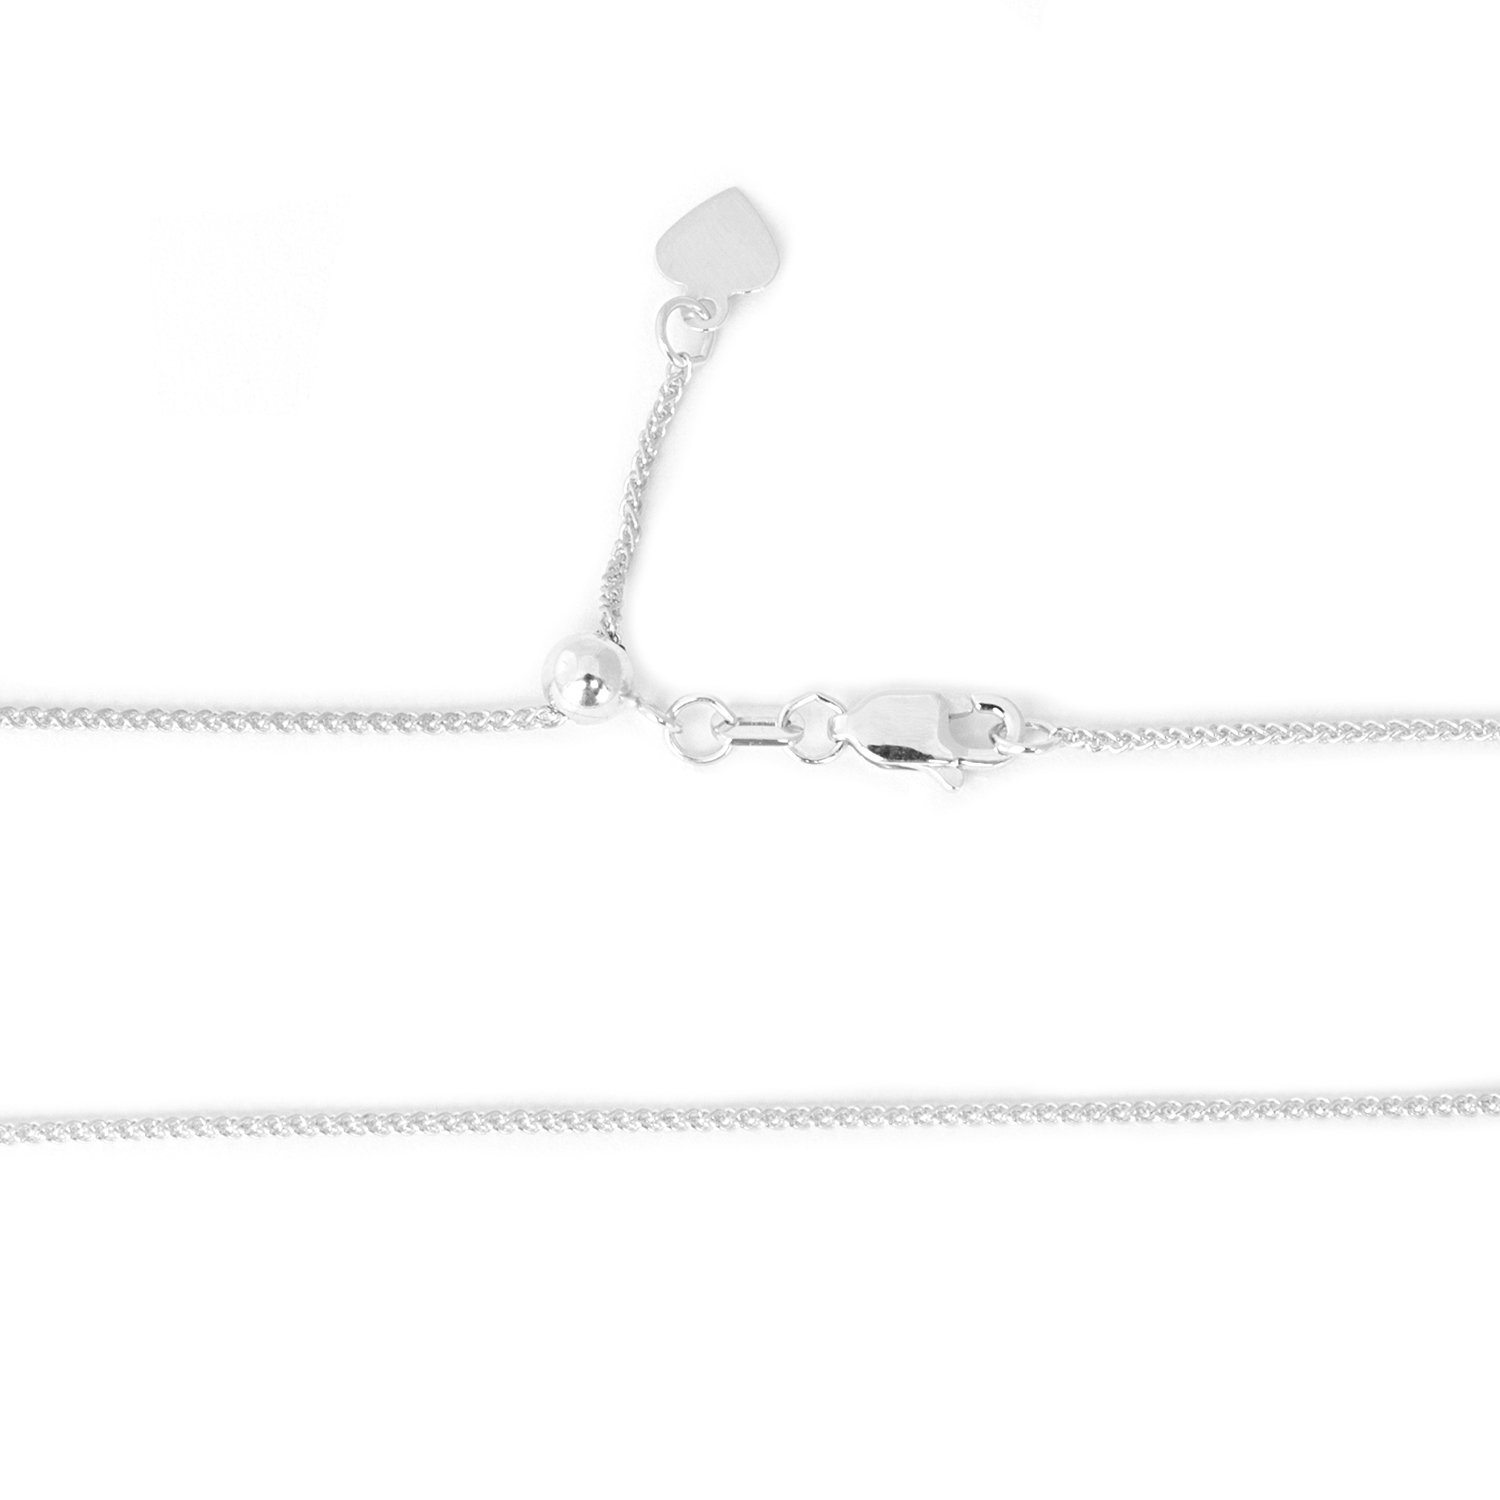 Solid 14k White Gold 1mm Adjustable Wheat Chain Necklace, up to 30''